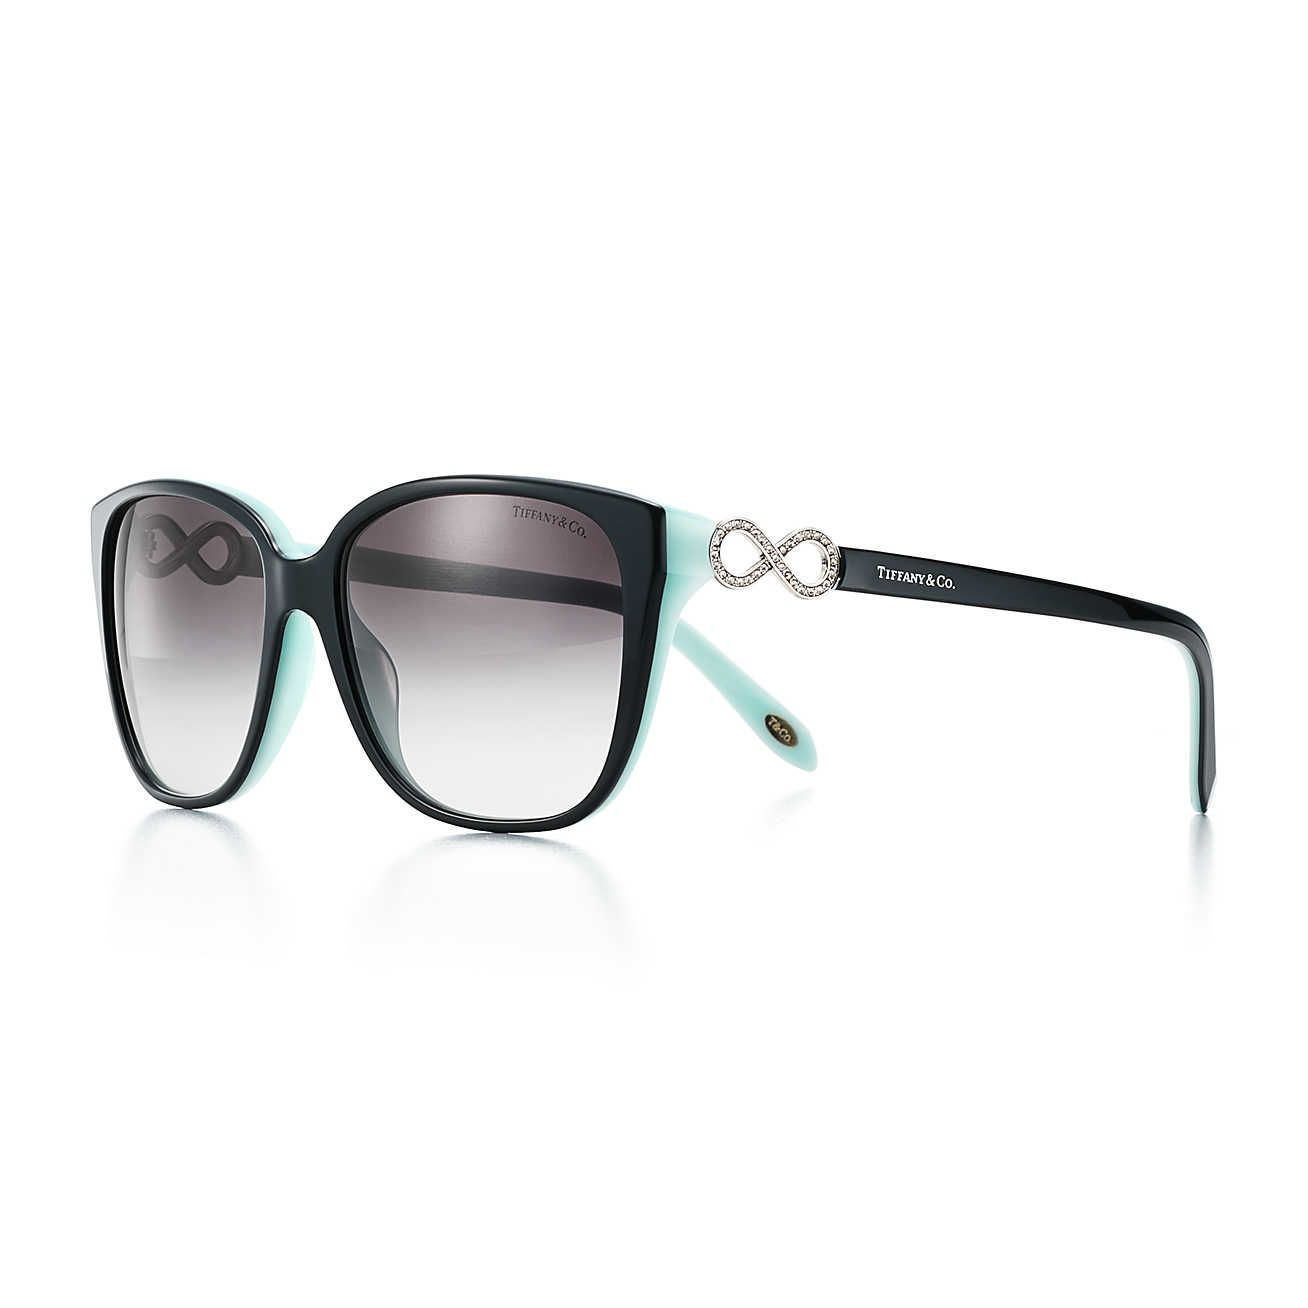 b4c22165ec5a Tiffany Infinity Square Sunglasses